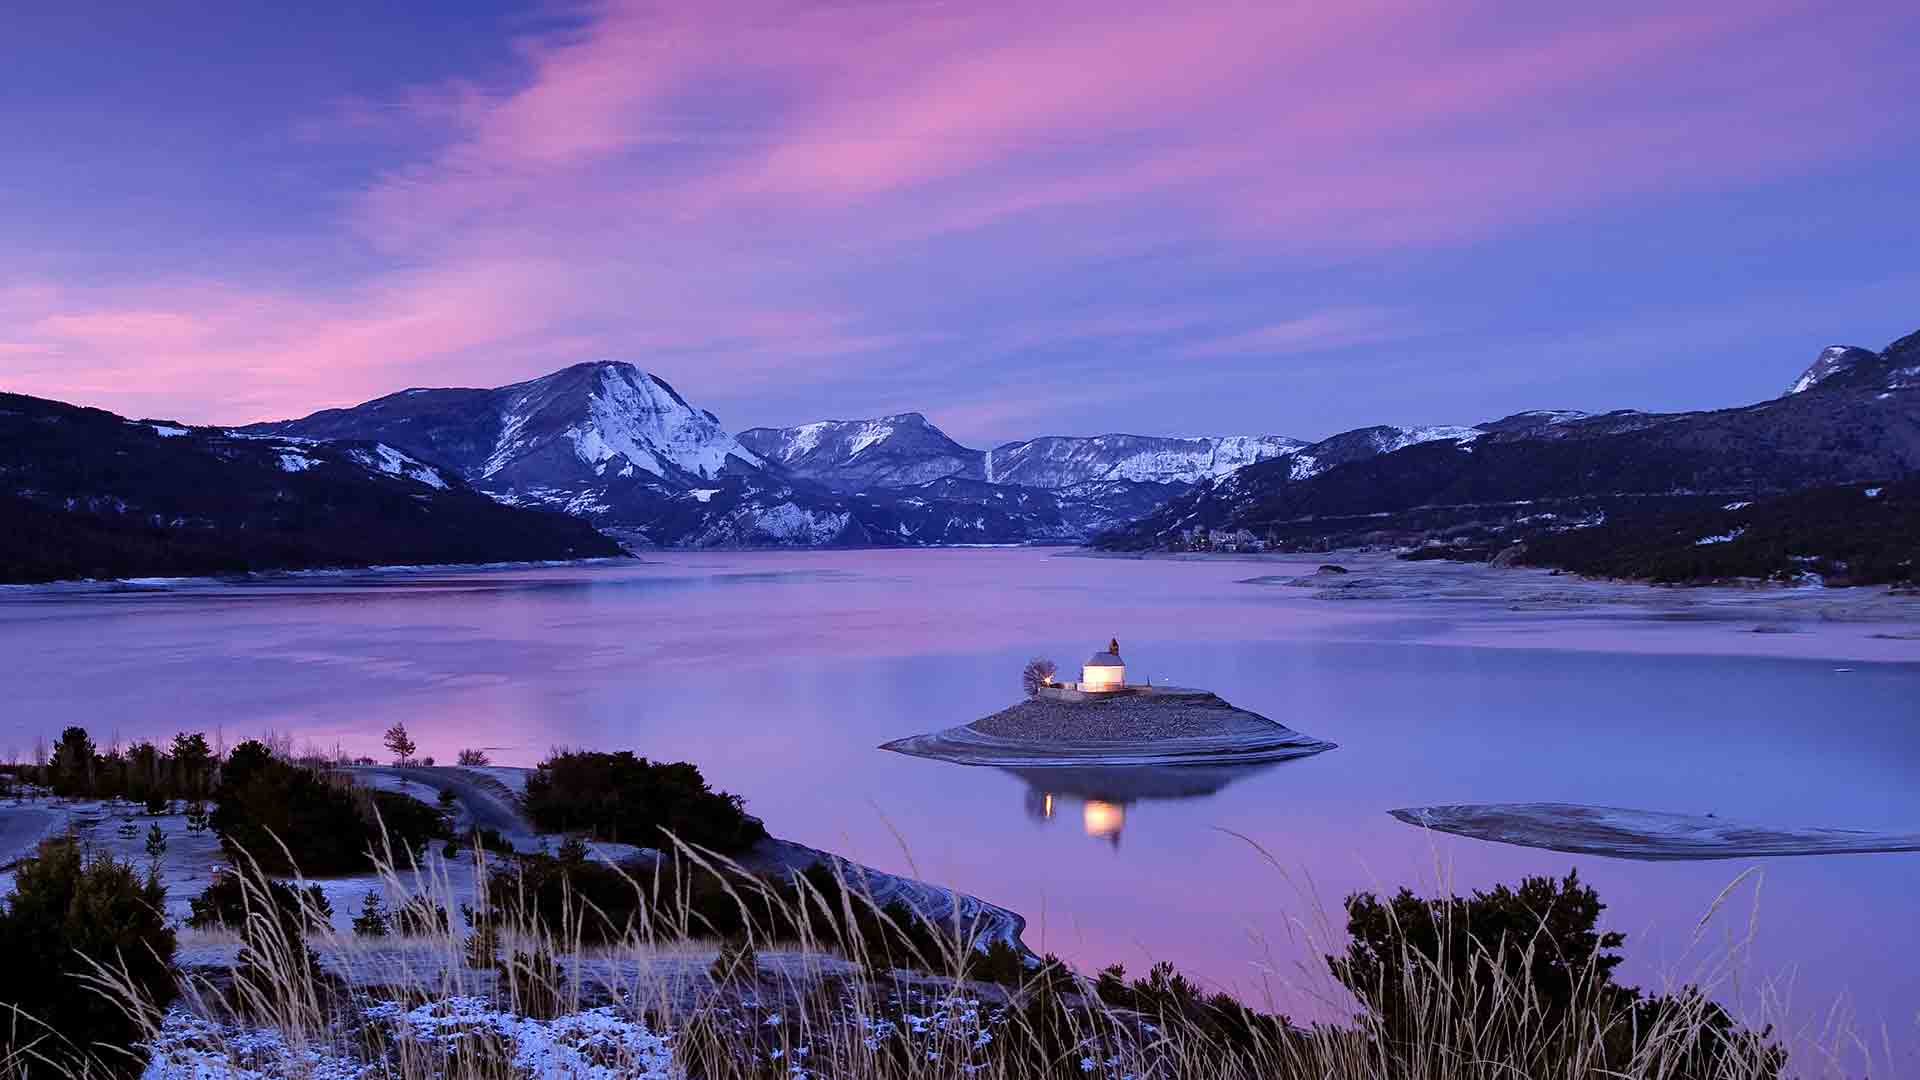 Chapel of St Michel on Lake Serre-Ponçon, Hautes-Alpes, France (© Hemis/SuperStock)